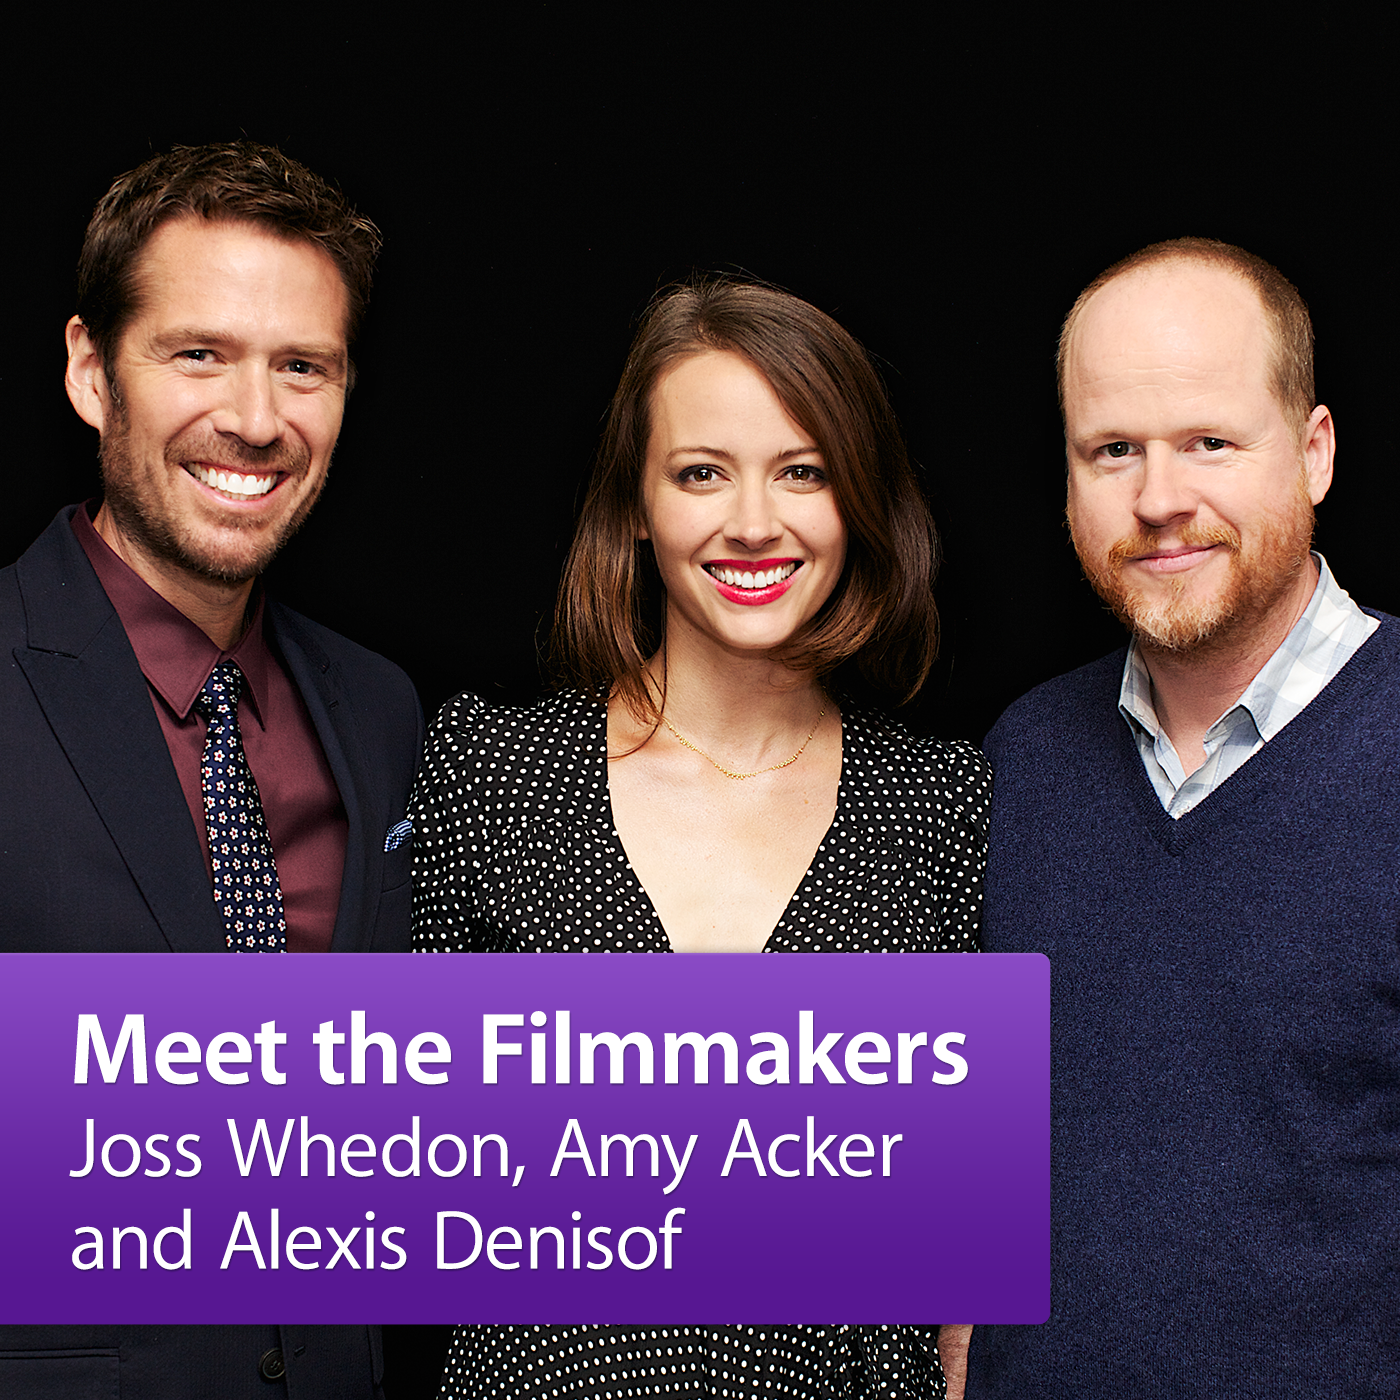 Joss Whedon, Amy Acker and Alexis Denisof: Meet the Filmmakers